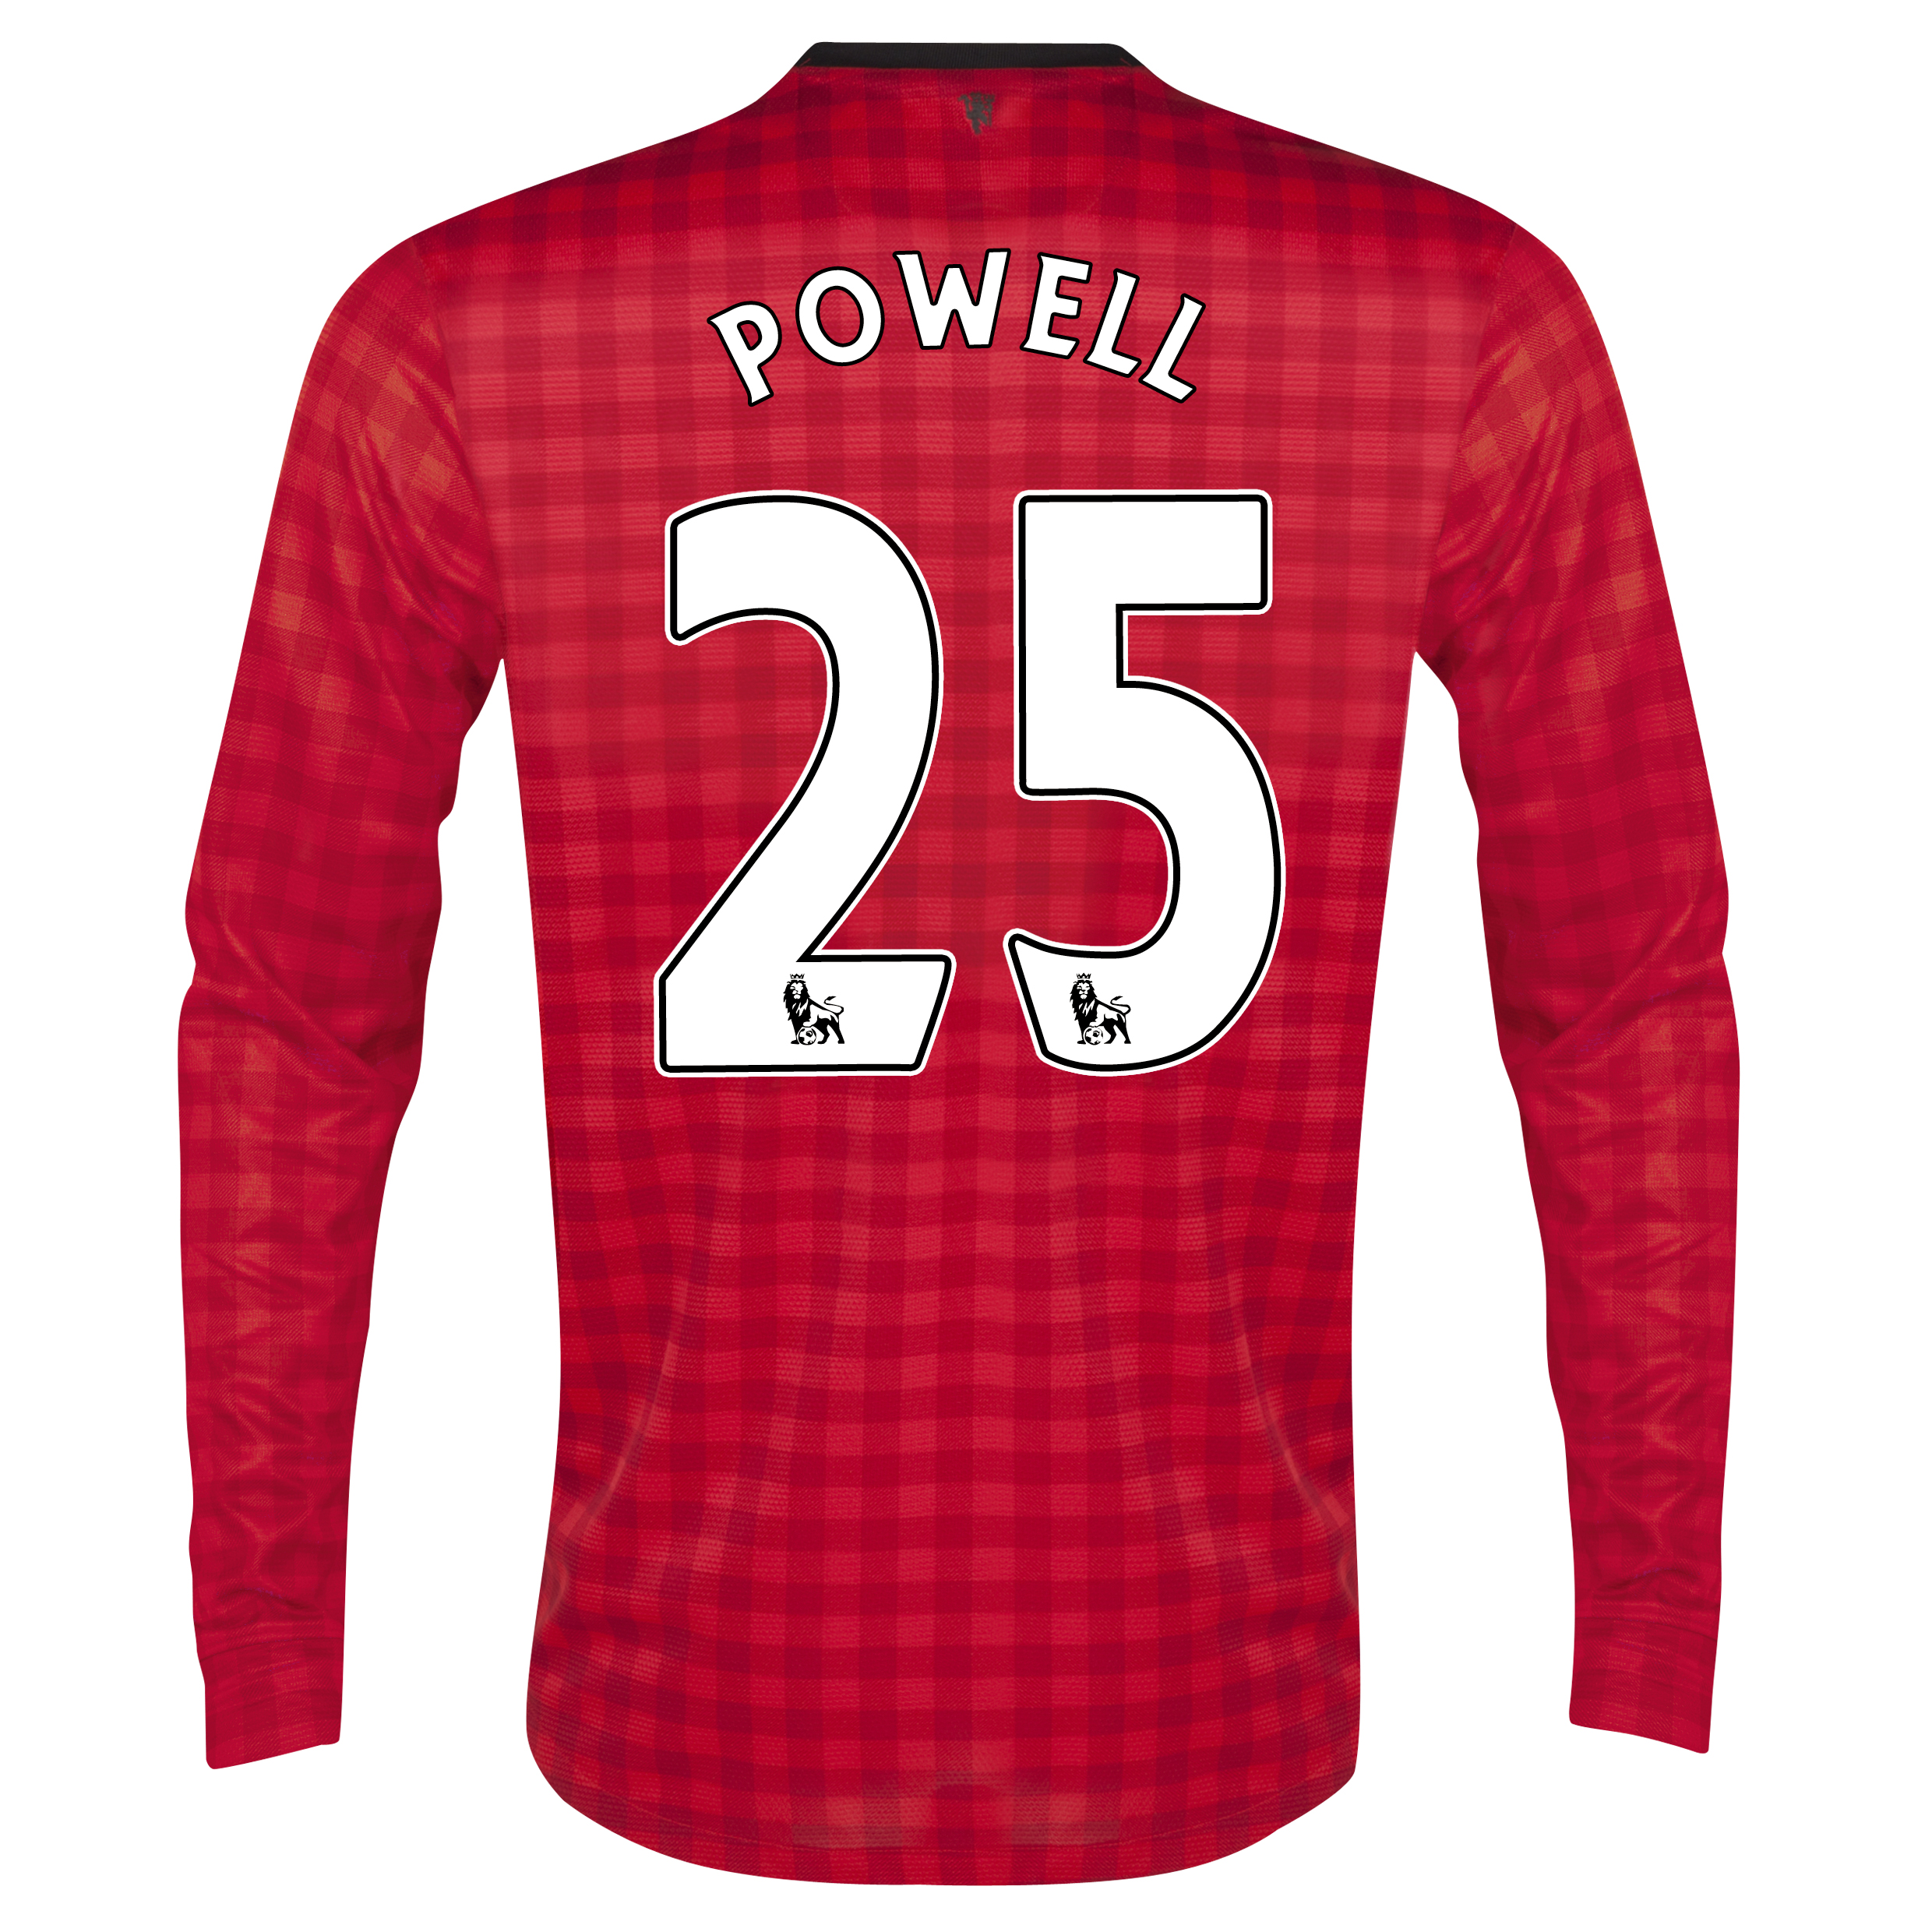 Manchester United Home Shirt 2012/13 - Long Sleeved with Powell 25 printing